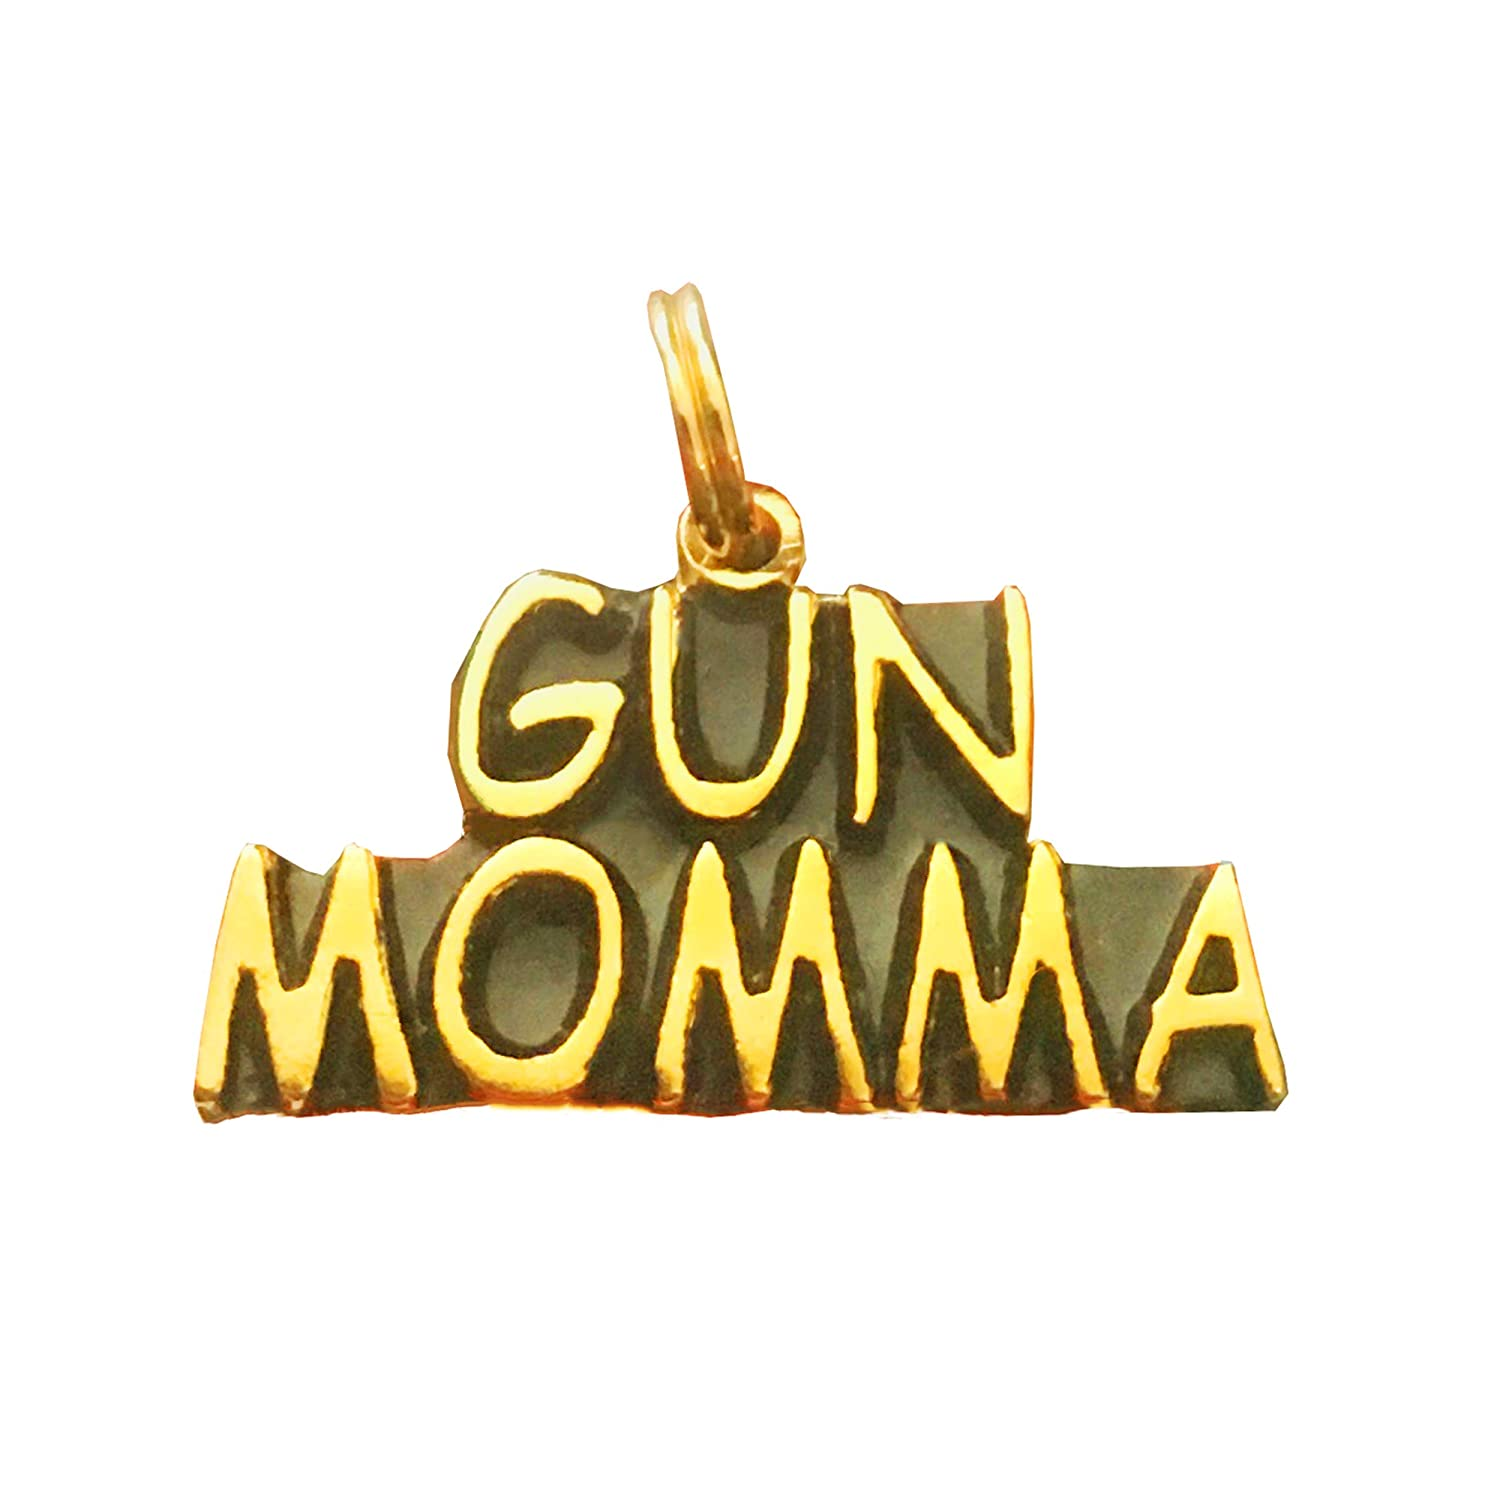 Amazon com: Gun Momma - Text Pendant/Charm, Yellow Gold